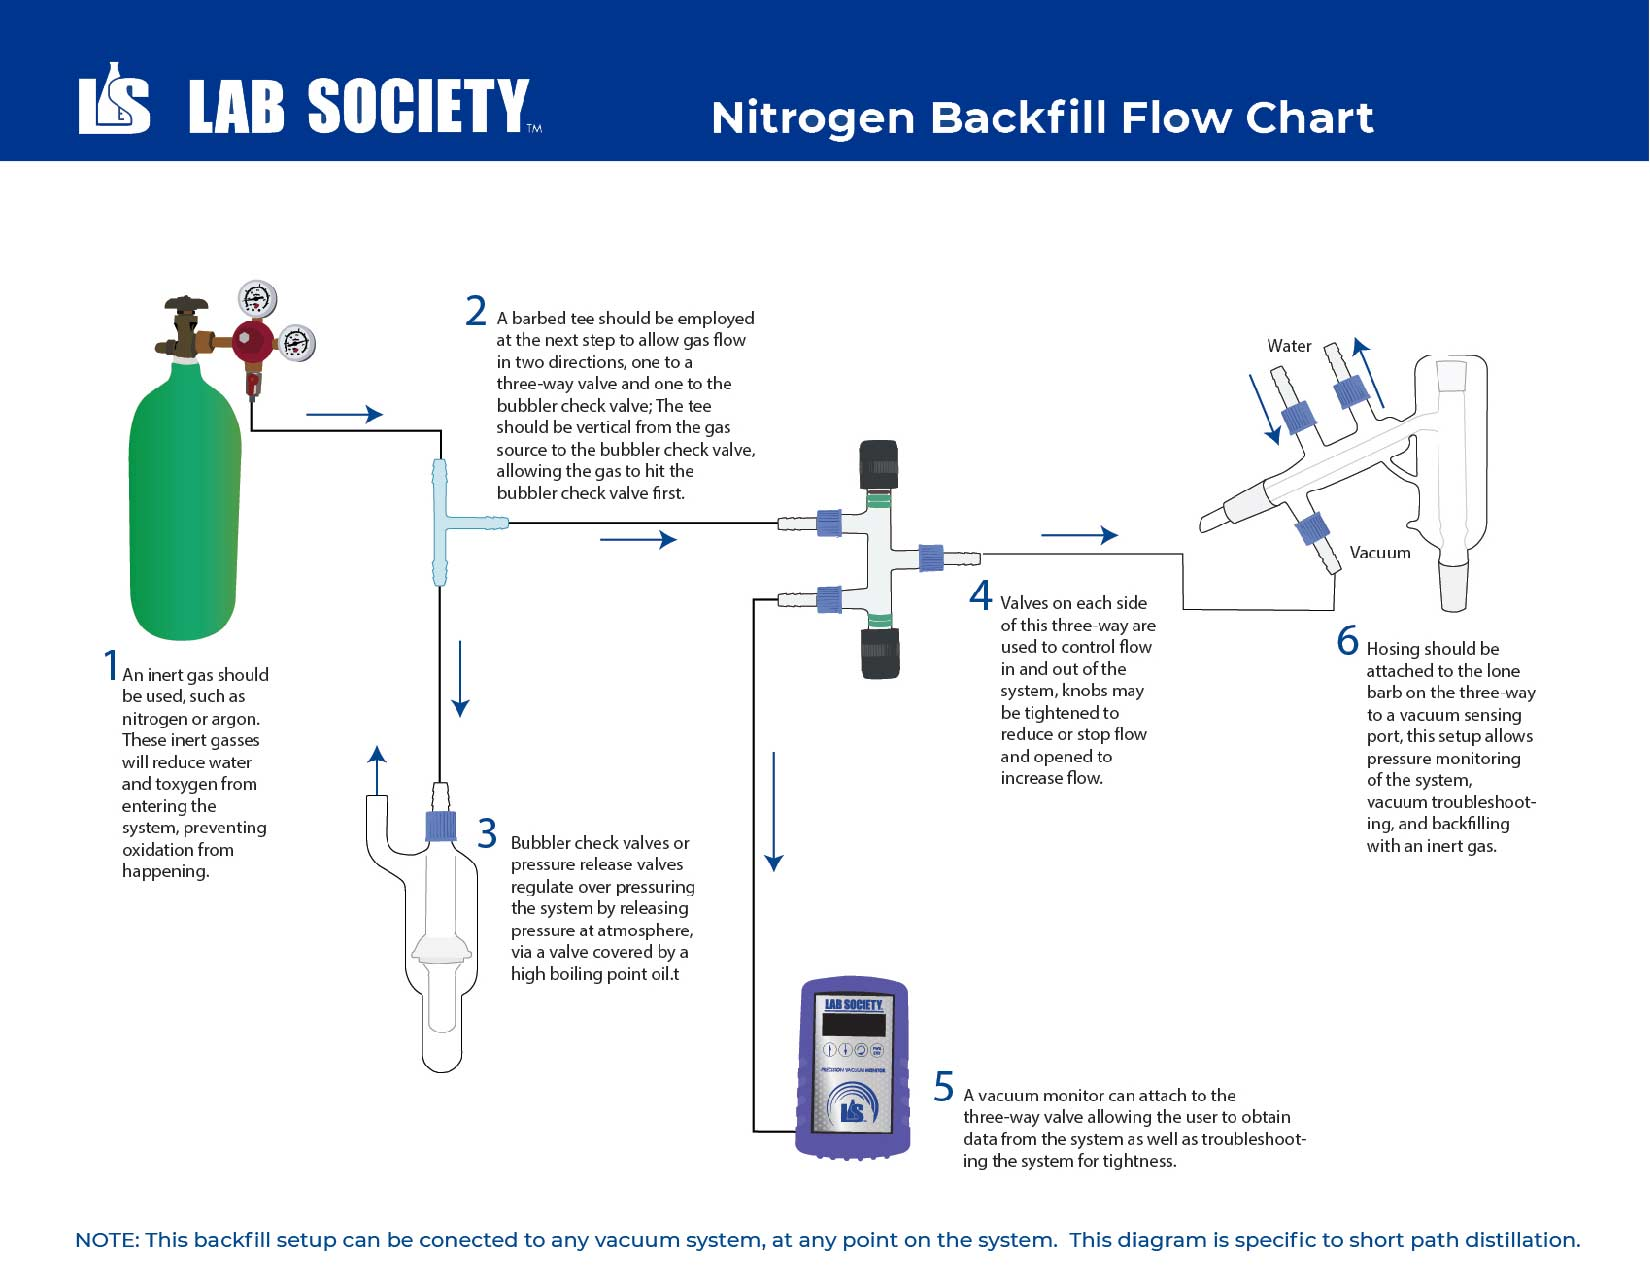 How to Backfill Your System with Inert Gas [Flowchart] - Lab Society